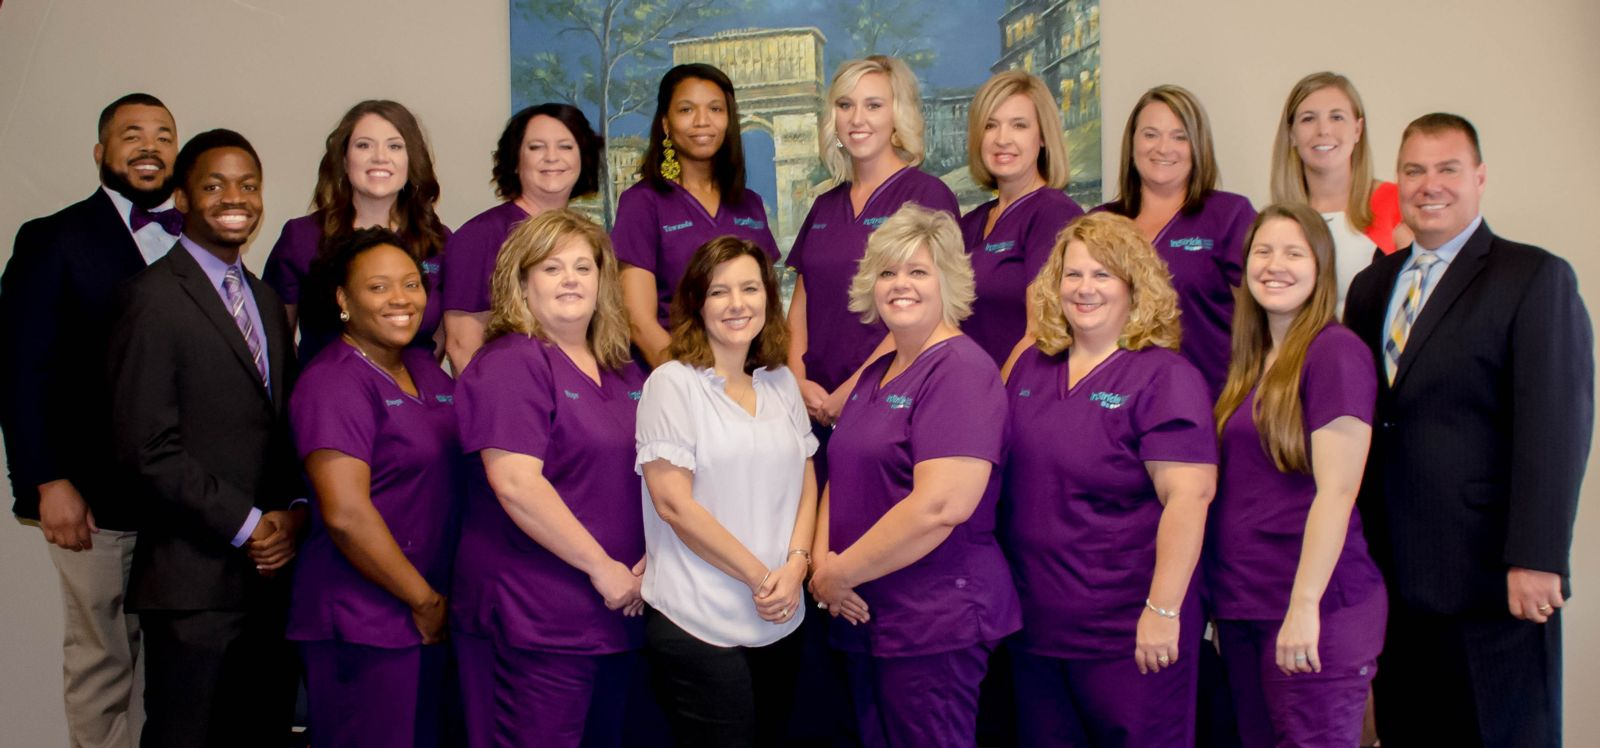 Hello from the team at Carolina Podiatry Group!